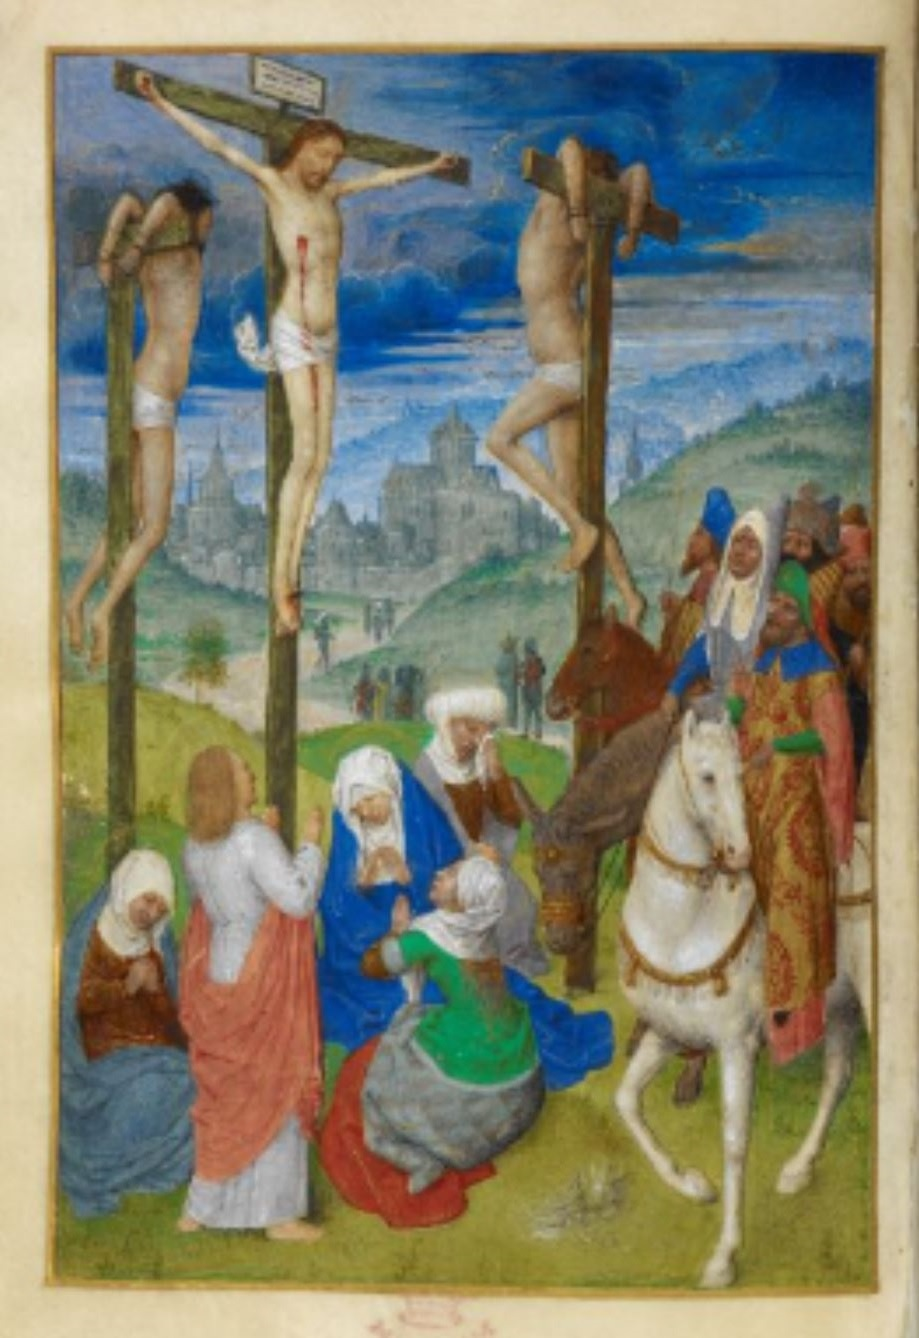 1485-90 Huth Hours BL Add MS 38126 fol 39v Simon Marmion Crucifixion